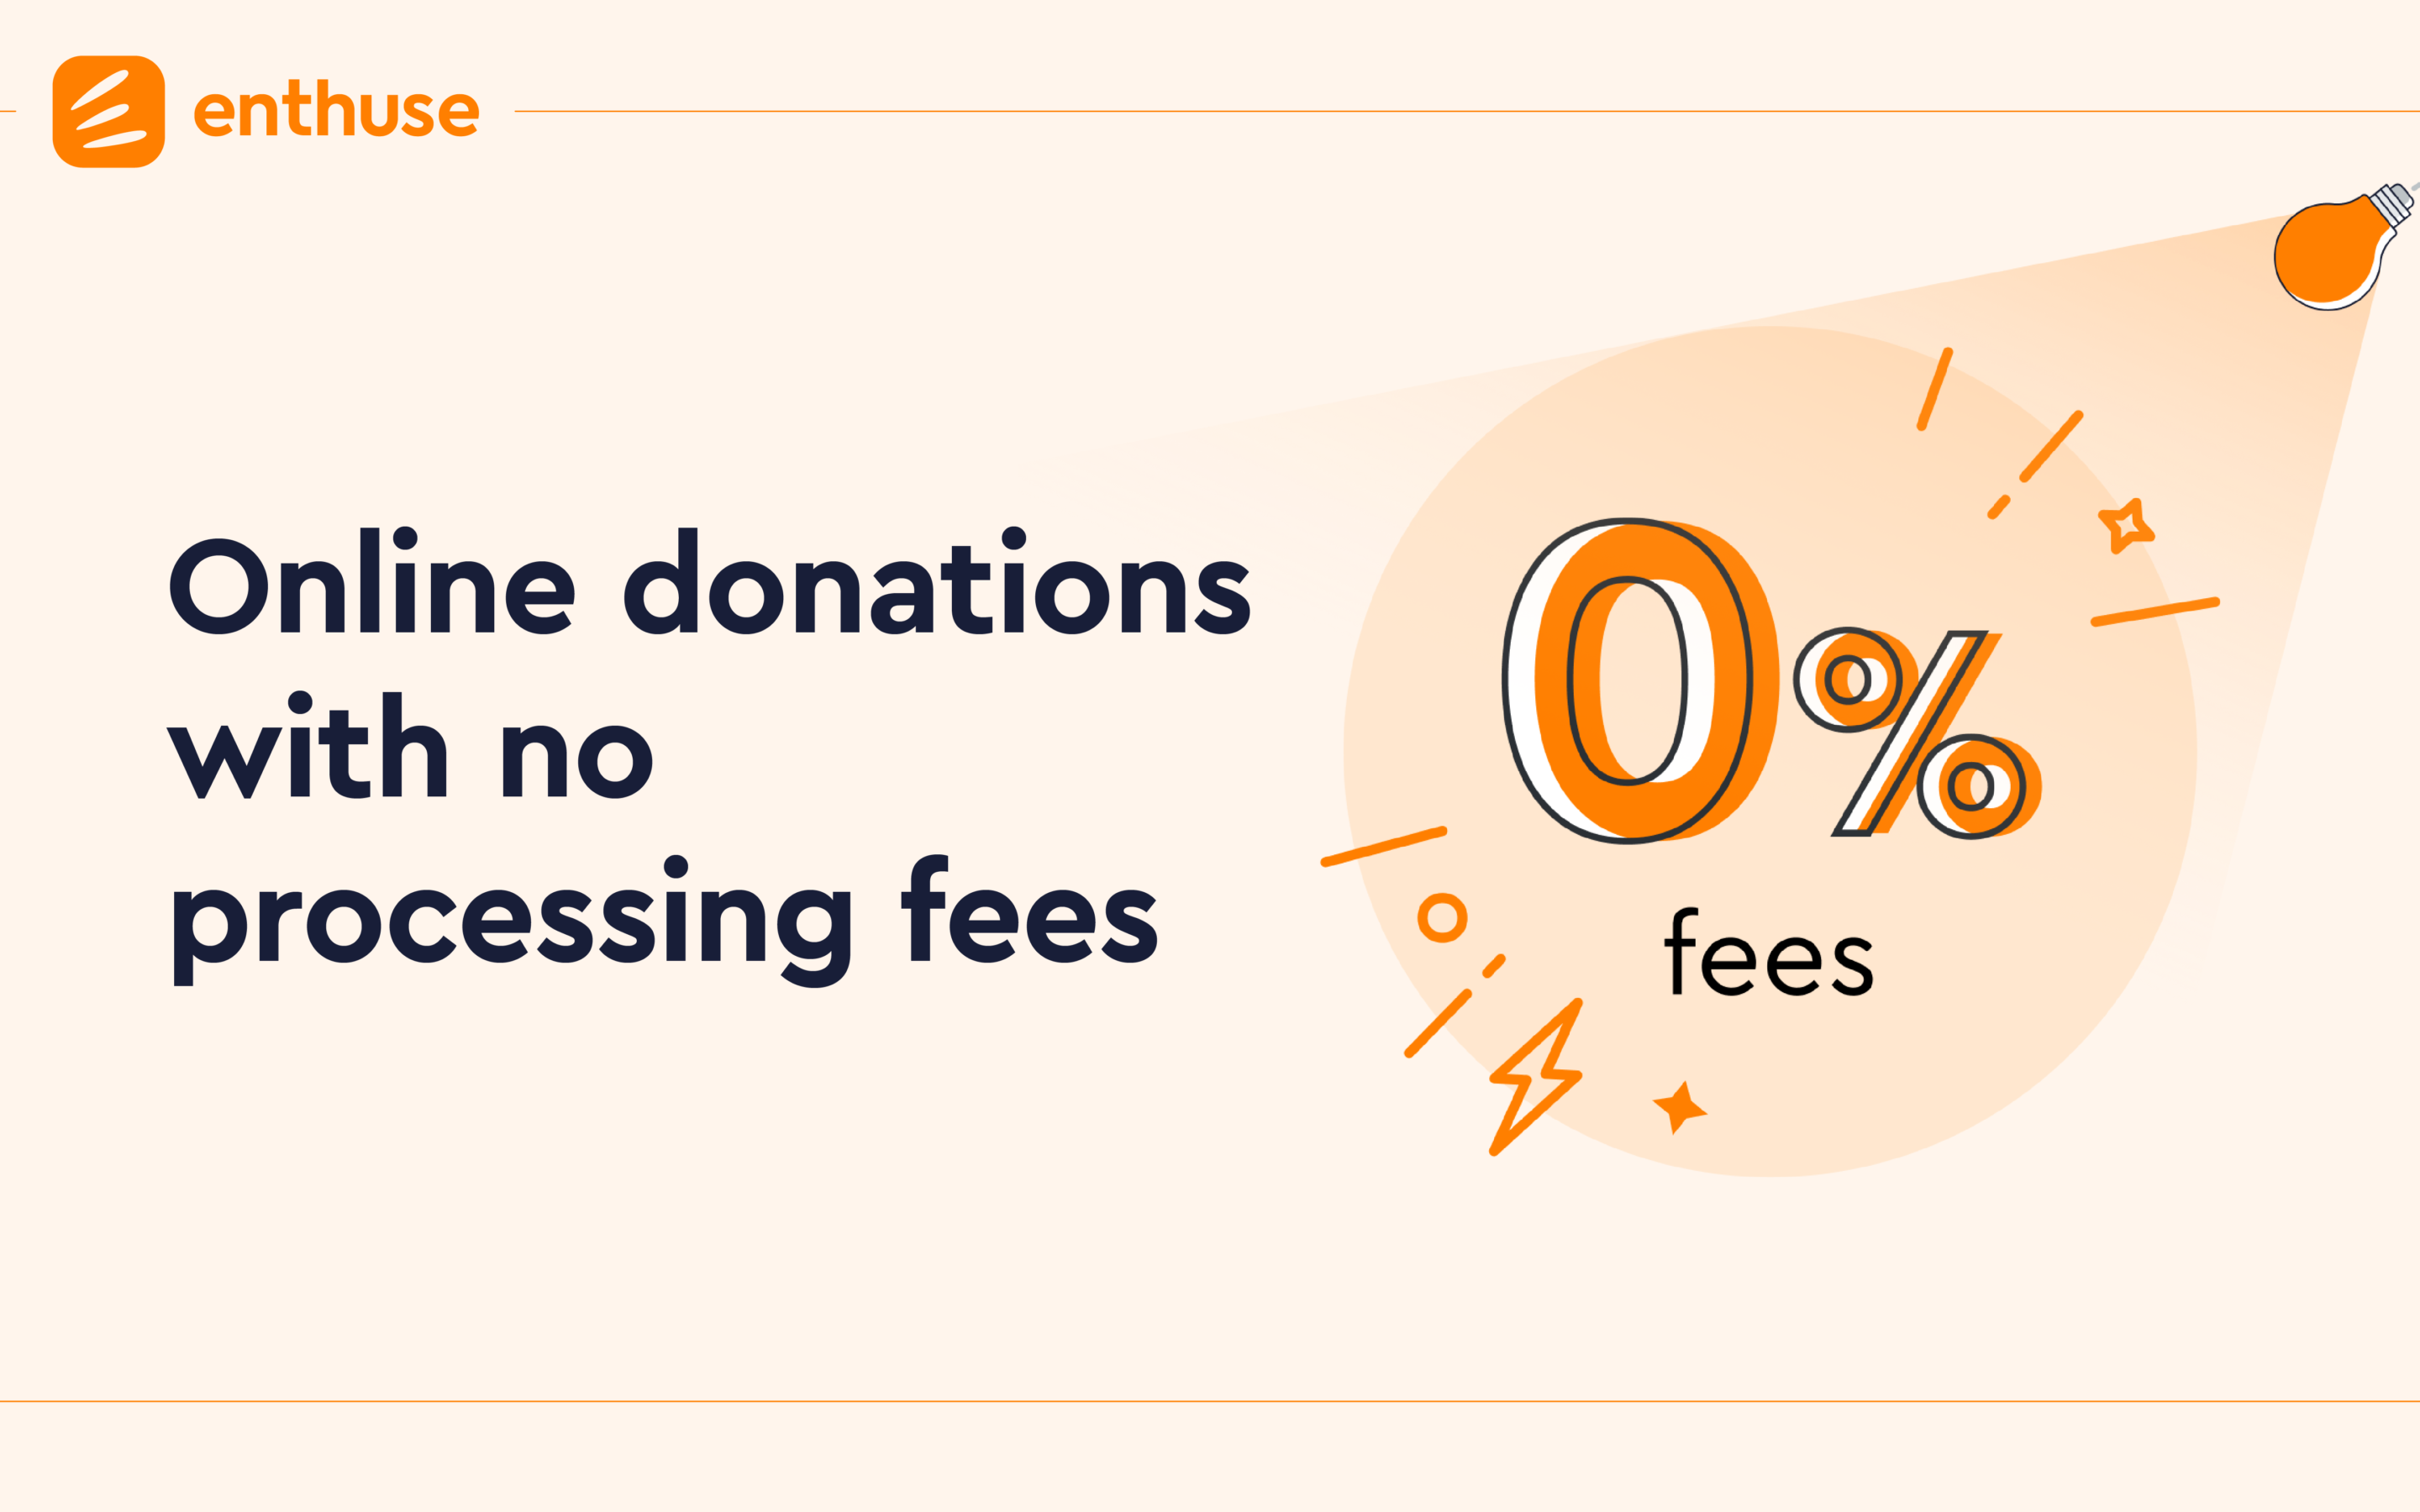 Enthuse launches online donations with no processing fees